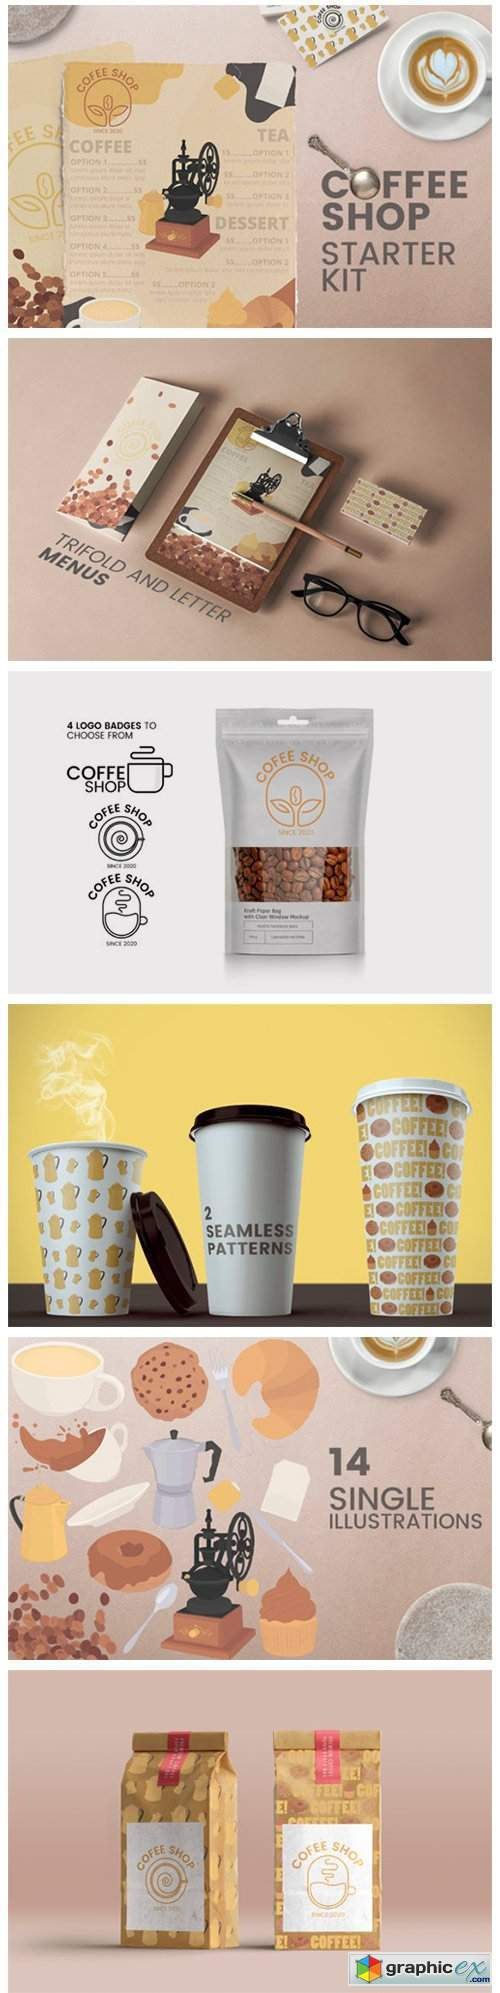 Coffee Shop Kit - Menus Logos MORE!